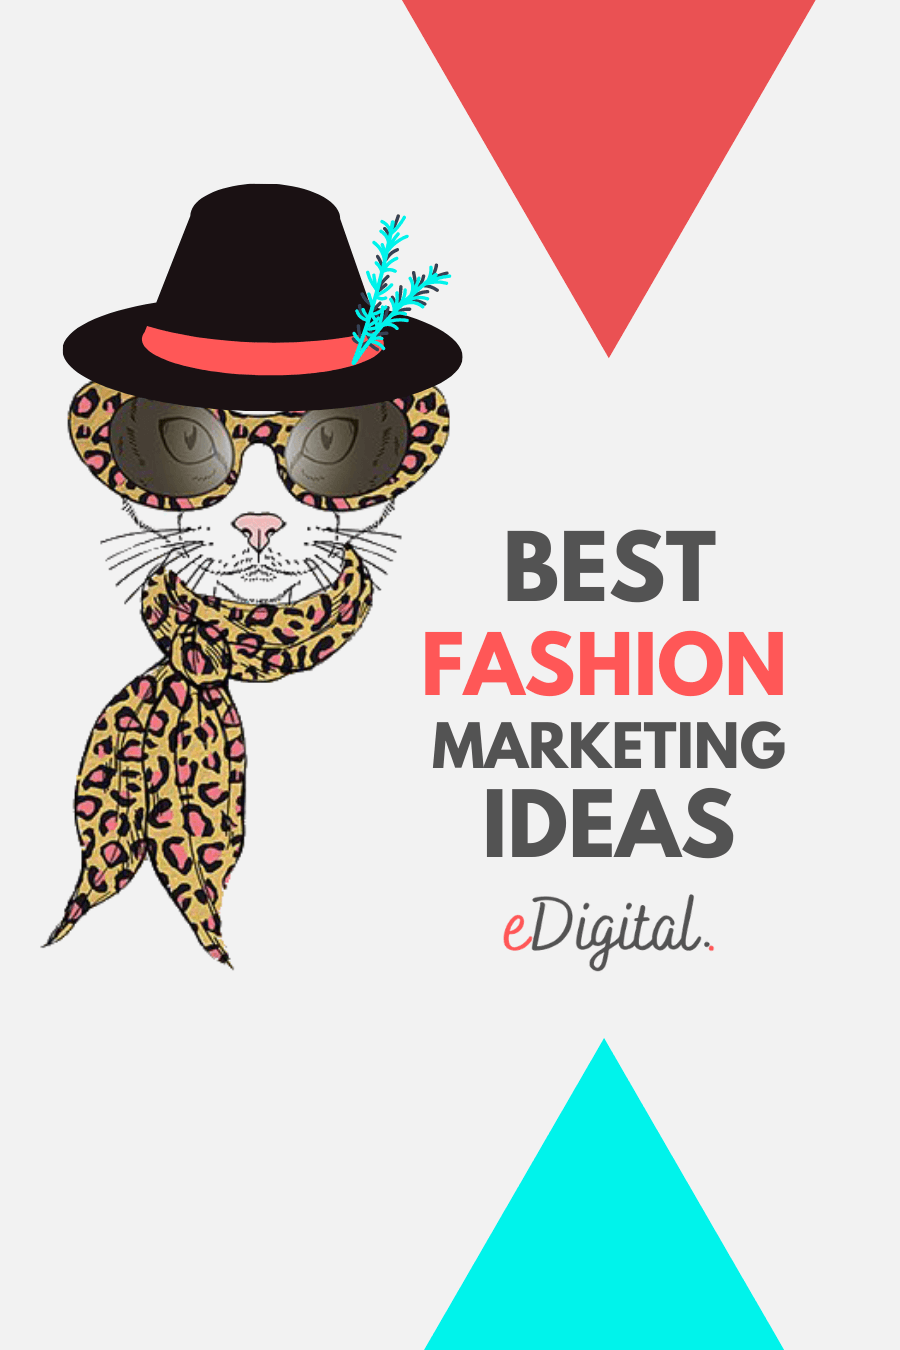 Best fashion marketing ideas